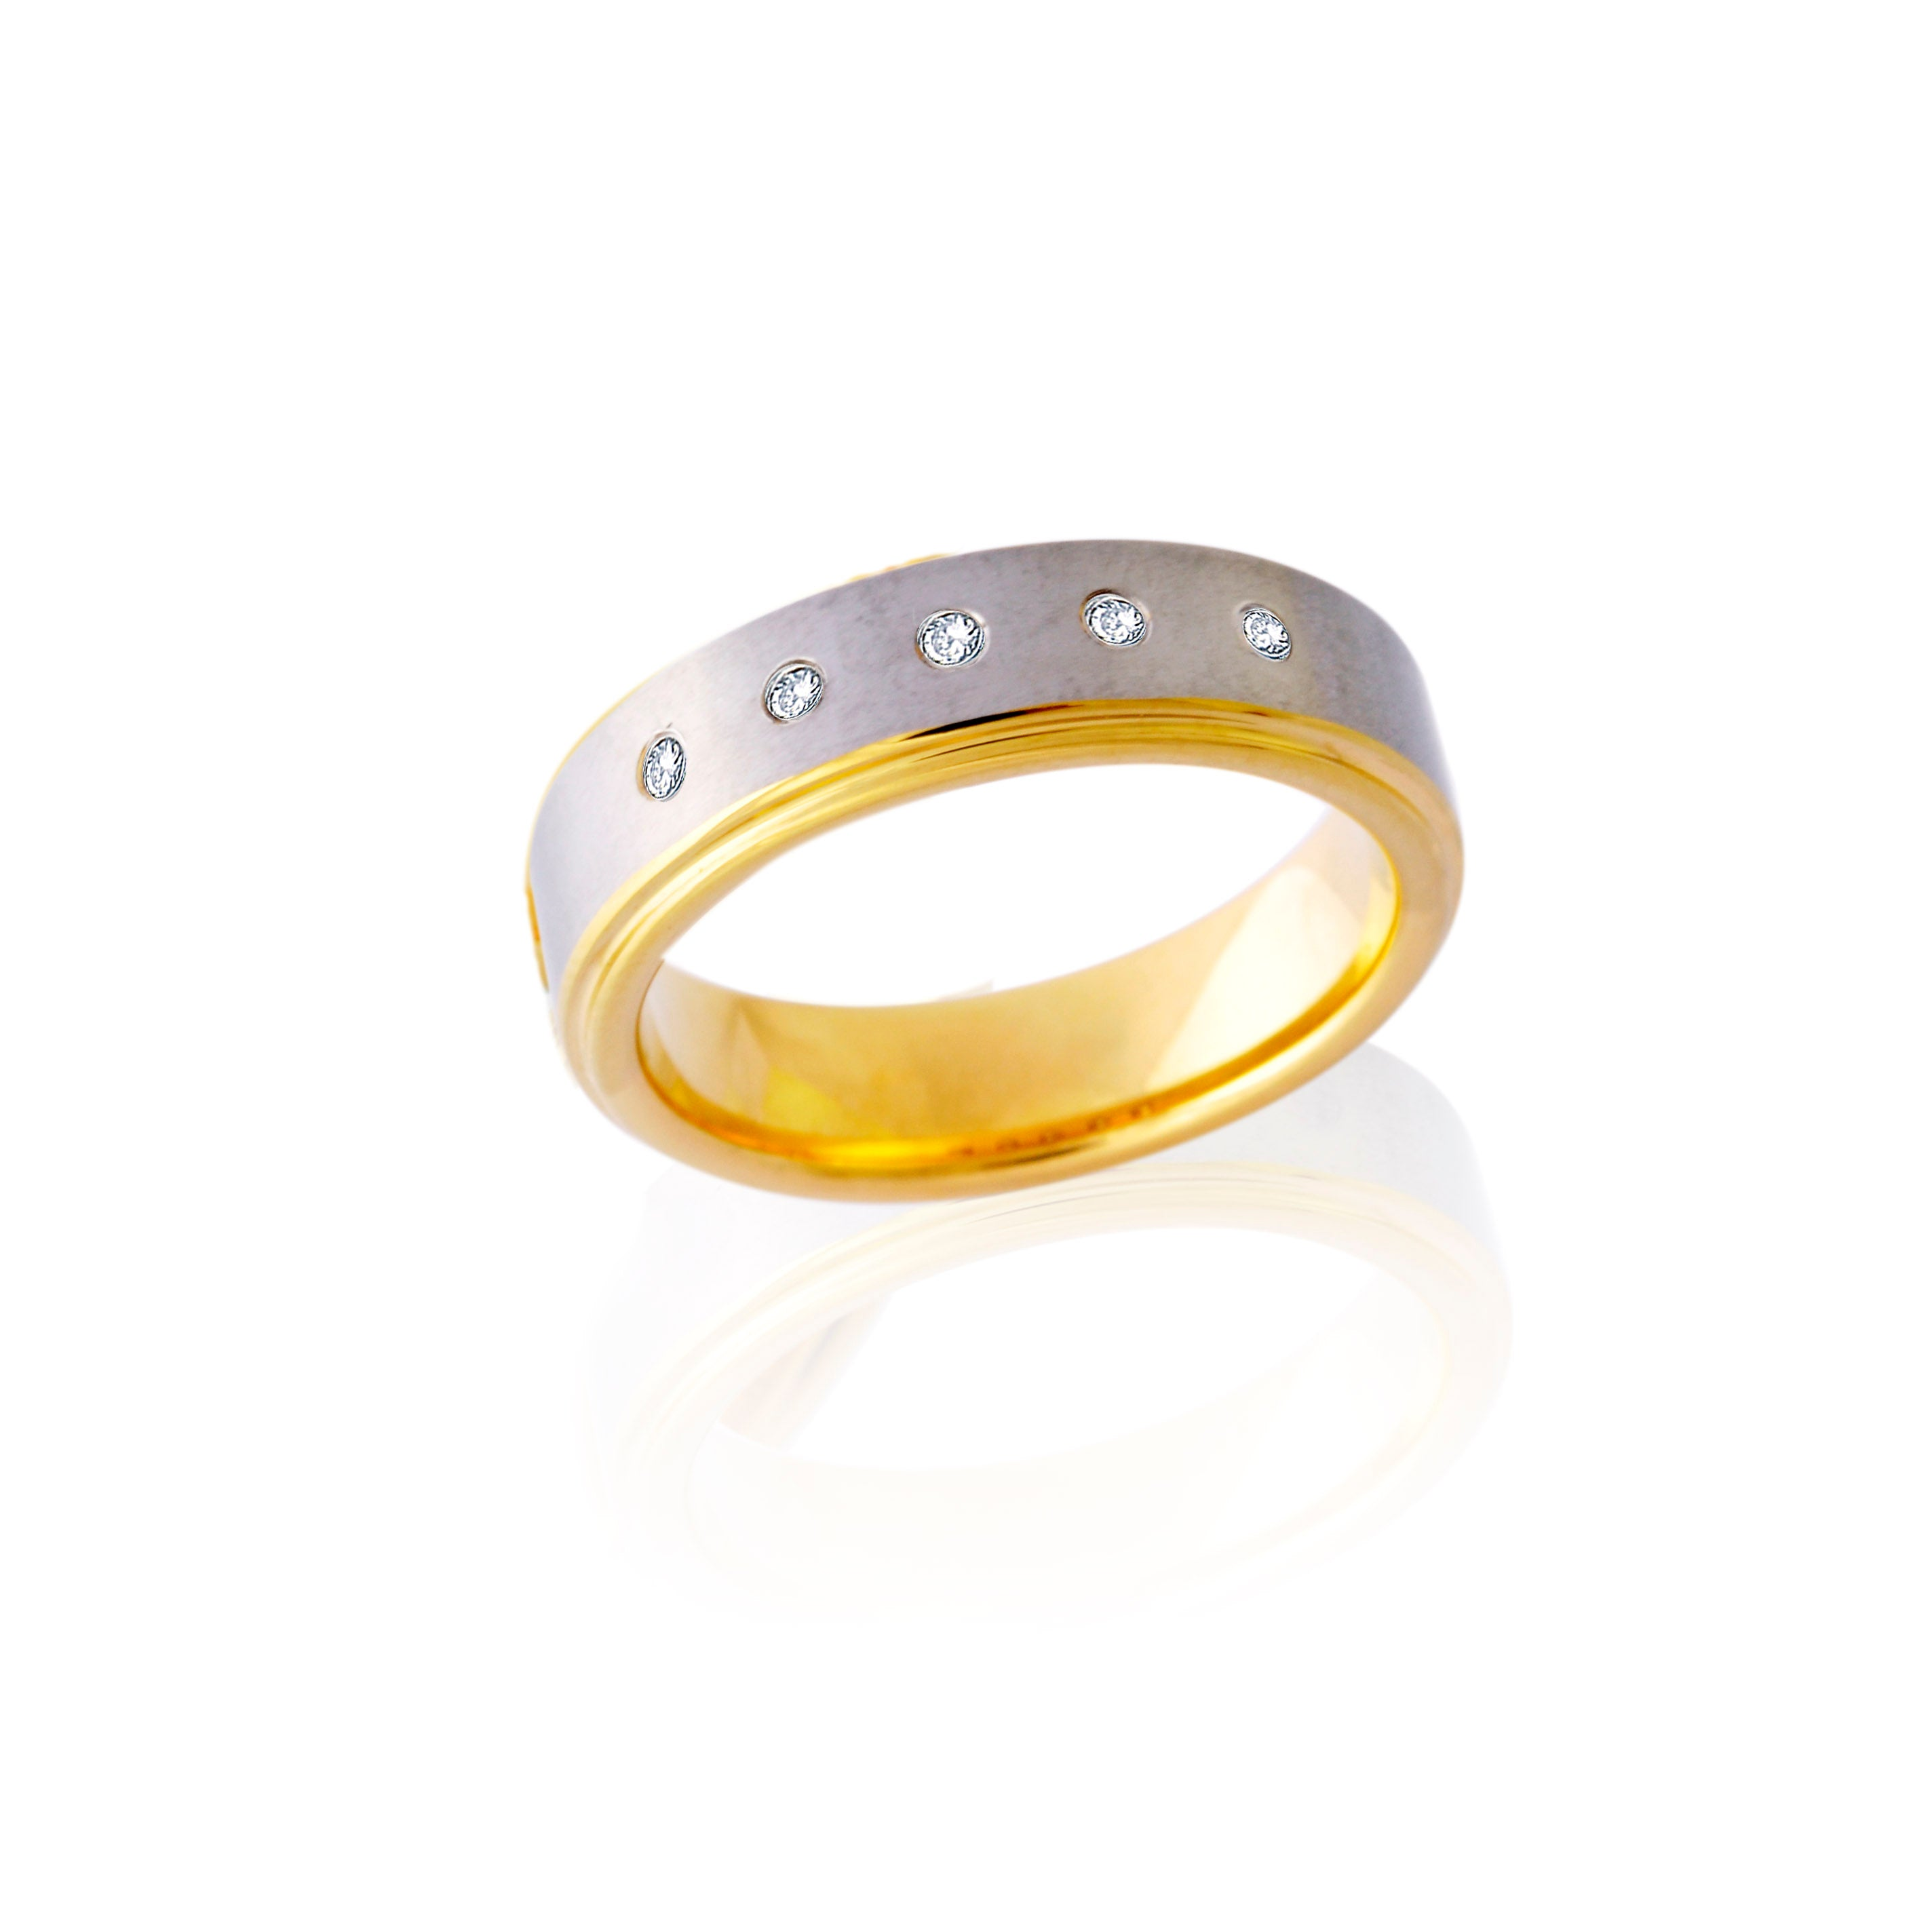 Interior Exterior Two-Tone Tungsten Ring with Diamonds in Five Rows